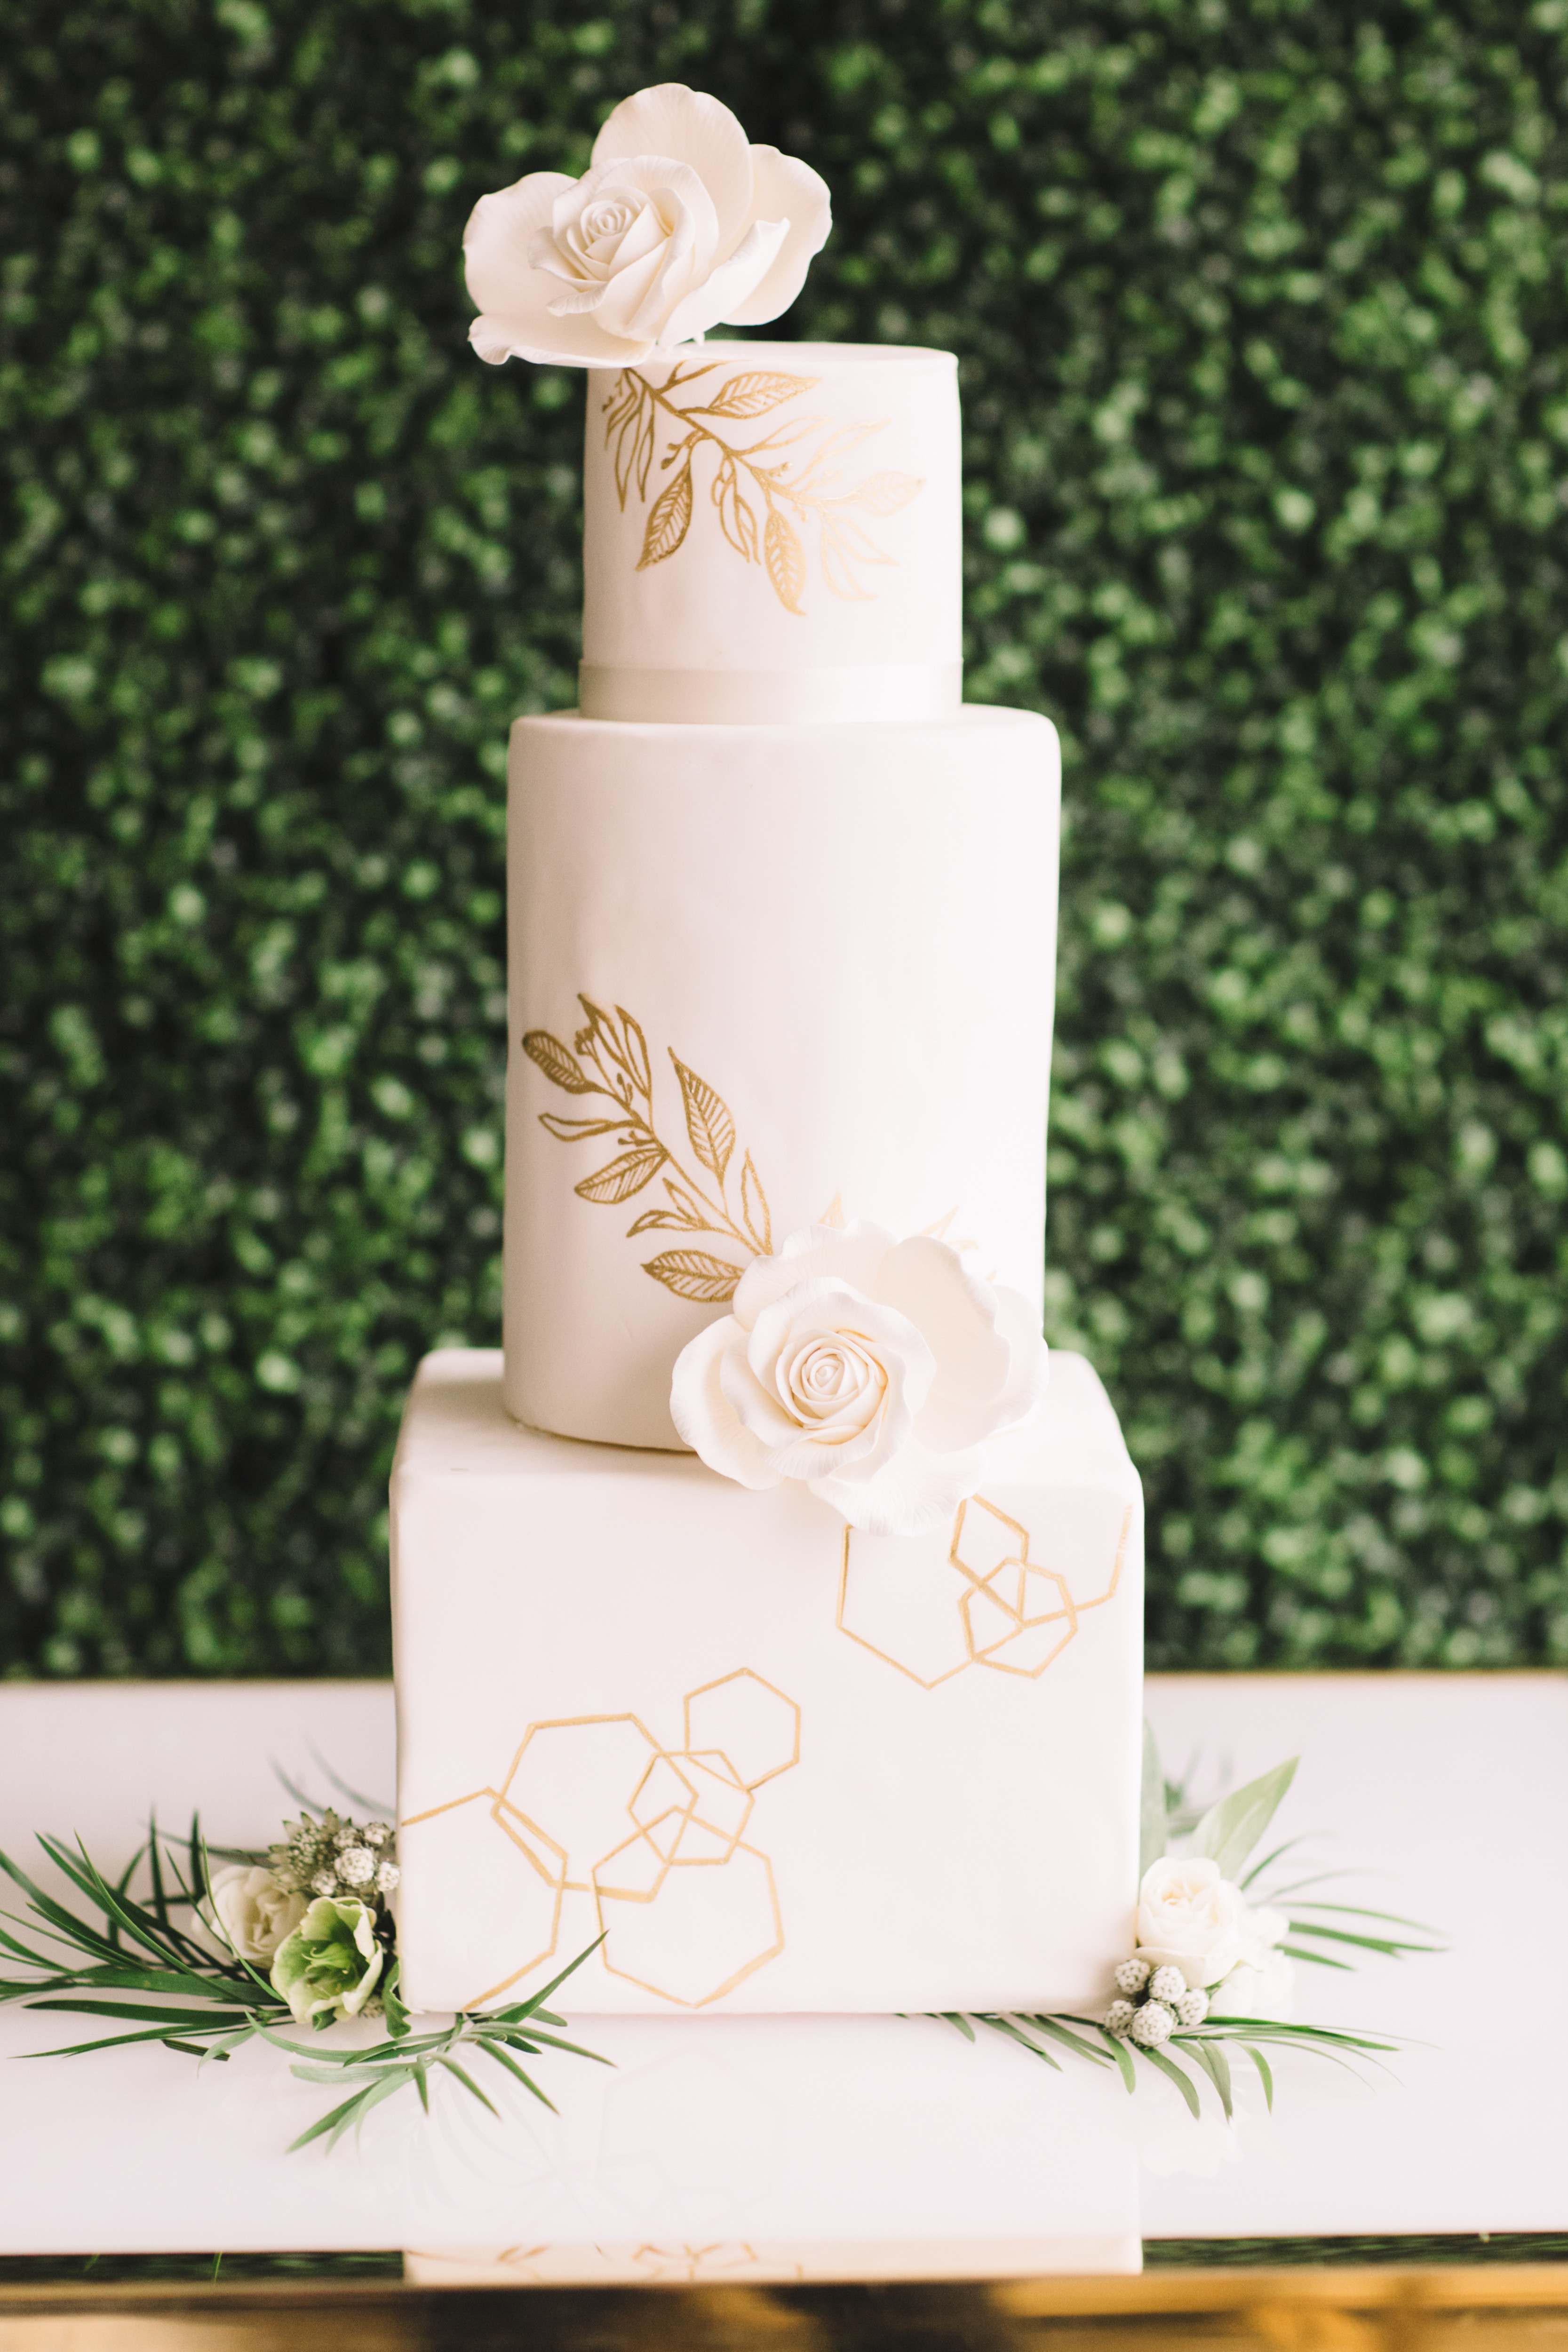 Ivory fondant wedding cake with hand painted gold leaves